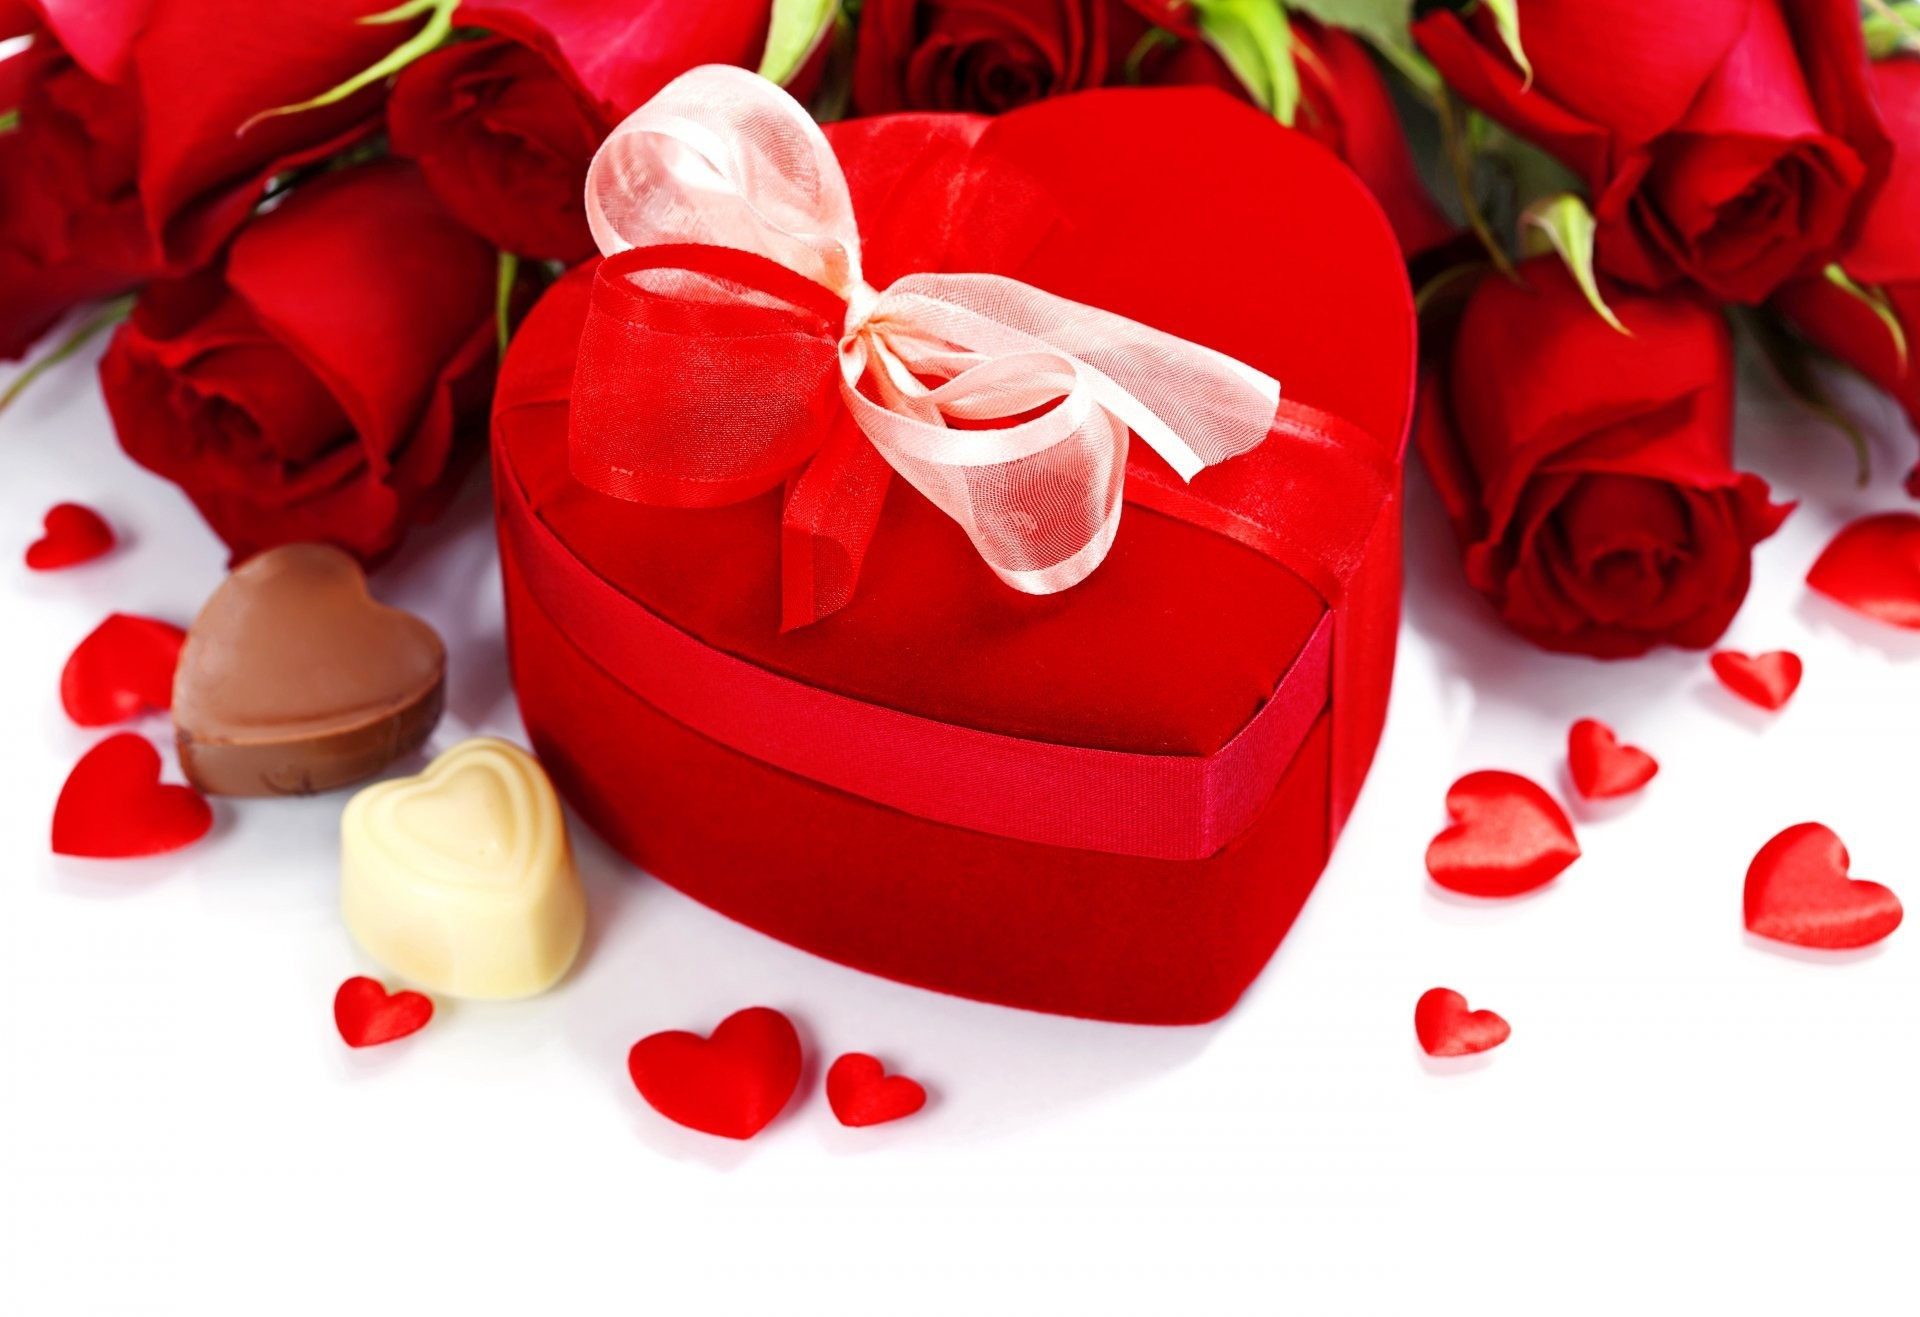 valentine's day love heart romantic roses roses bouquet heart present candy  chocolate